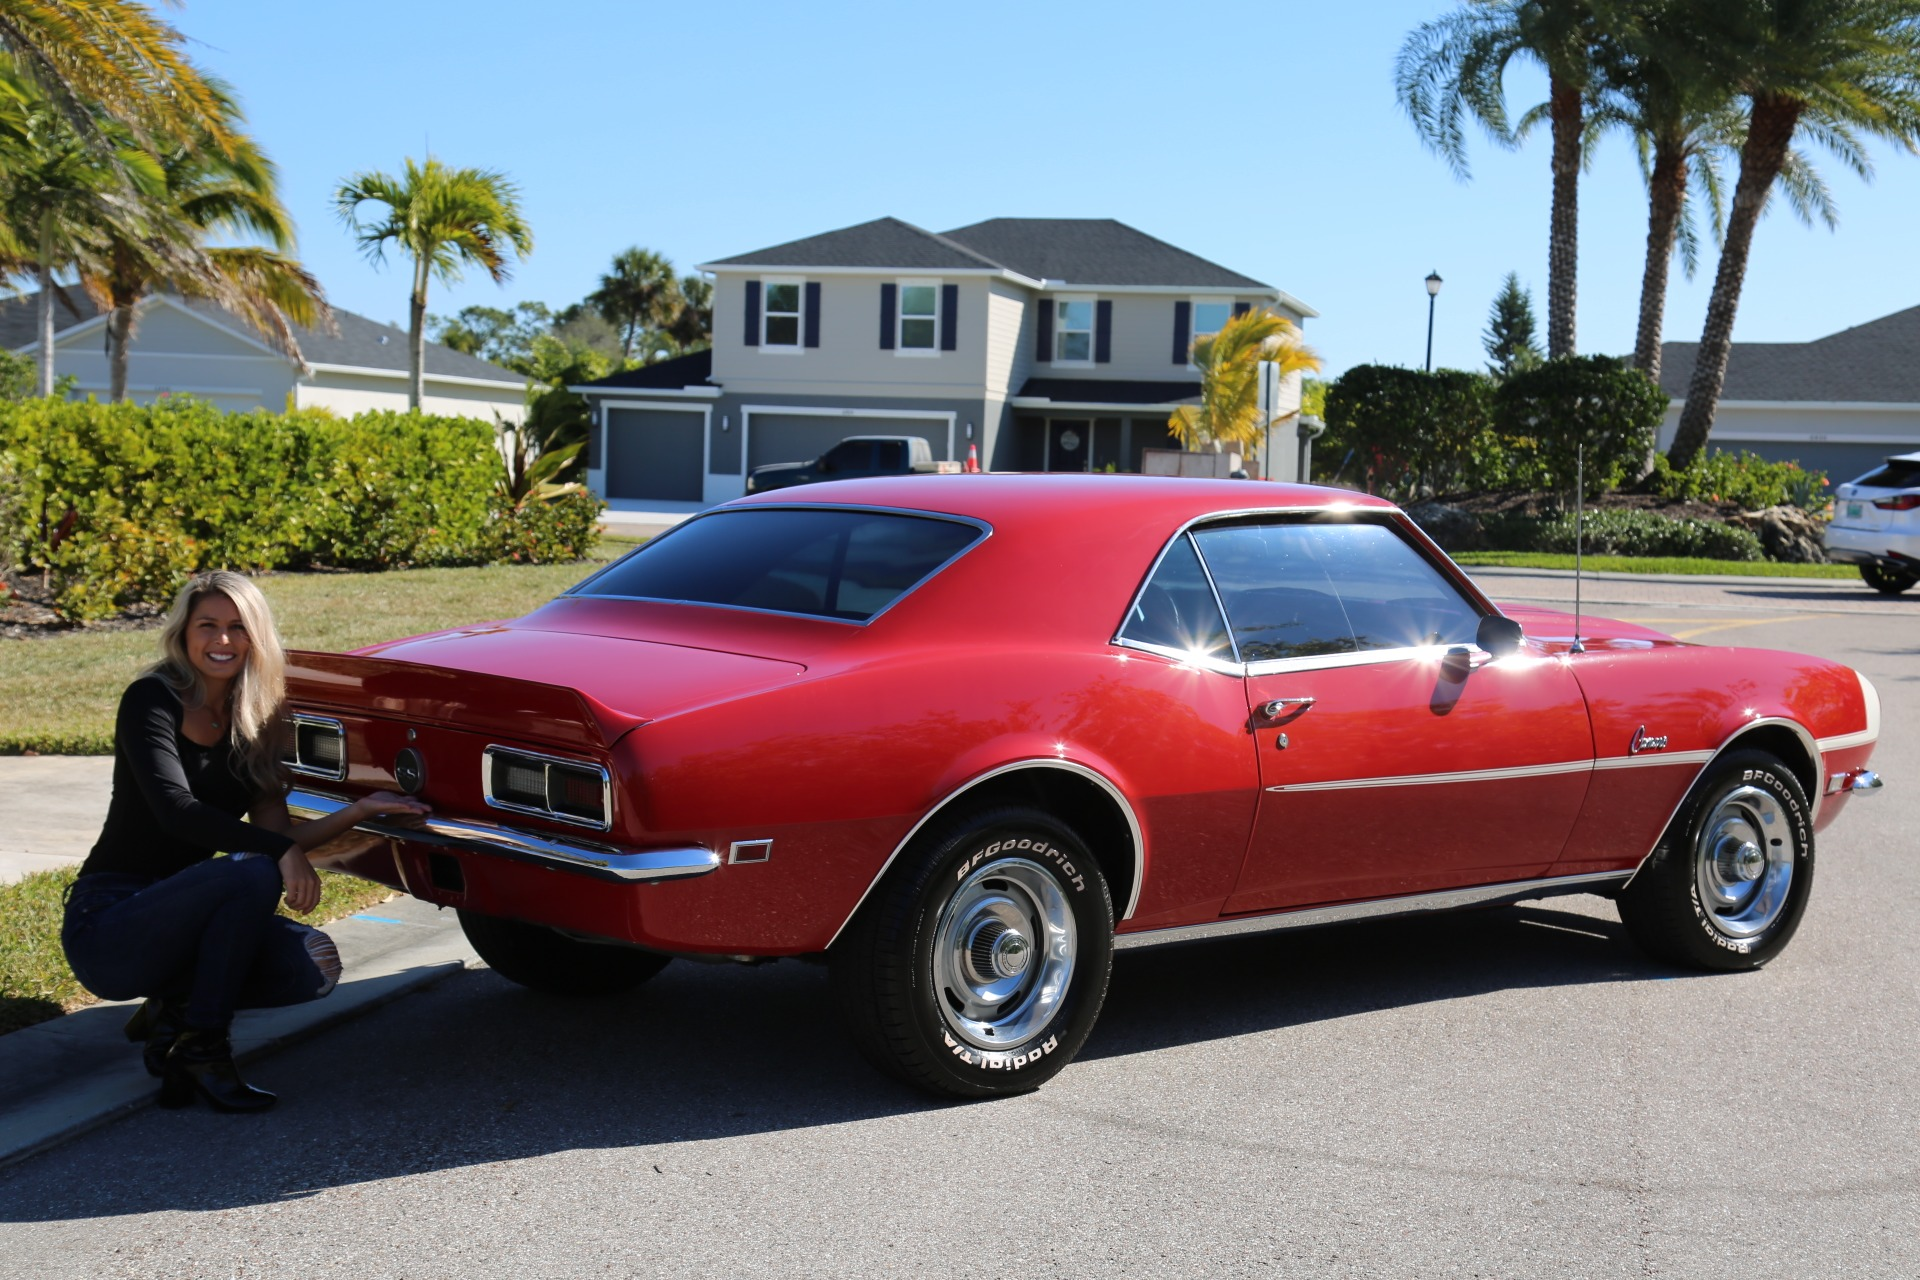 Used 1968 Chevrolet Camaro Camaro V8 350 Auto for sale Sold at Muscle Cars for Sale Inc. in Fort Myers FL 33912 7